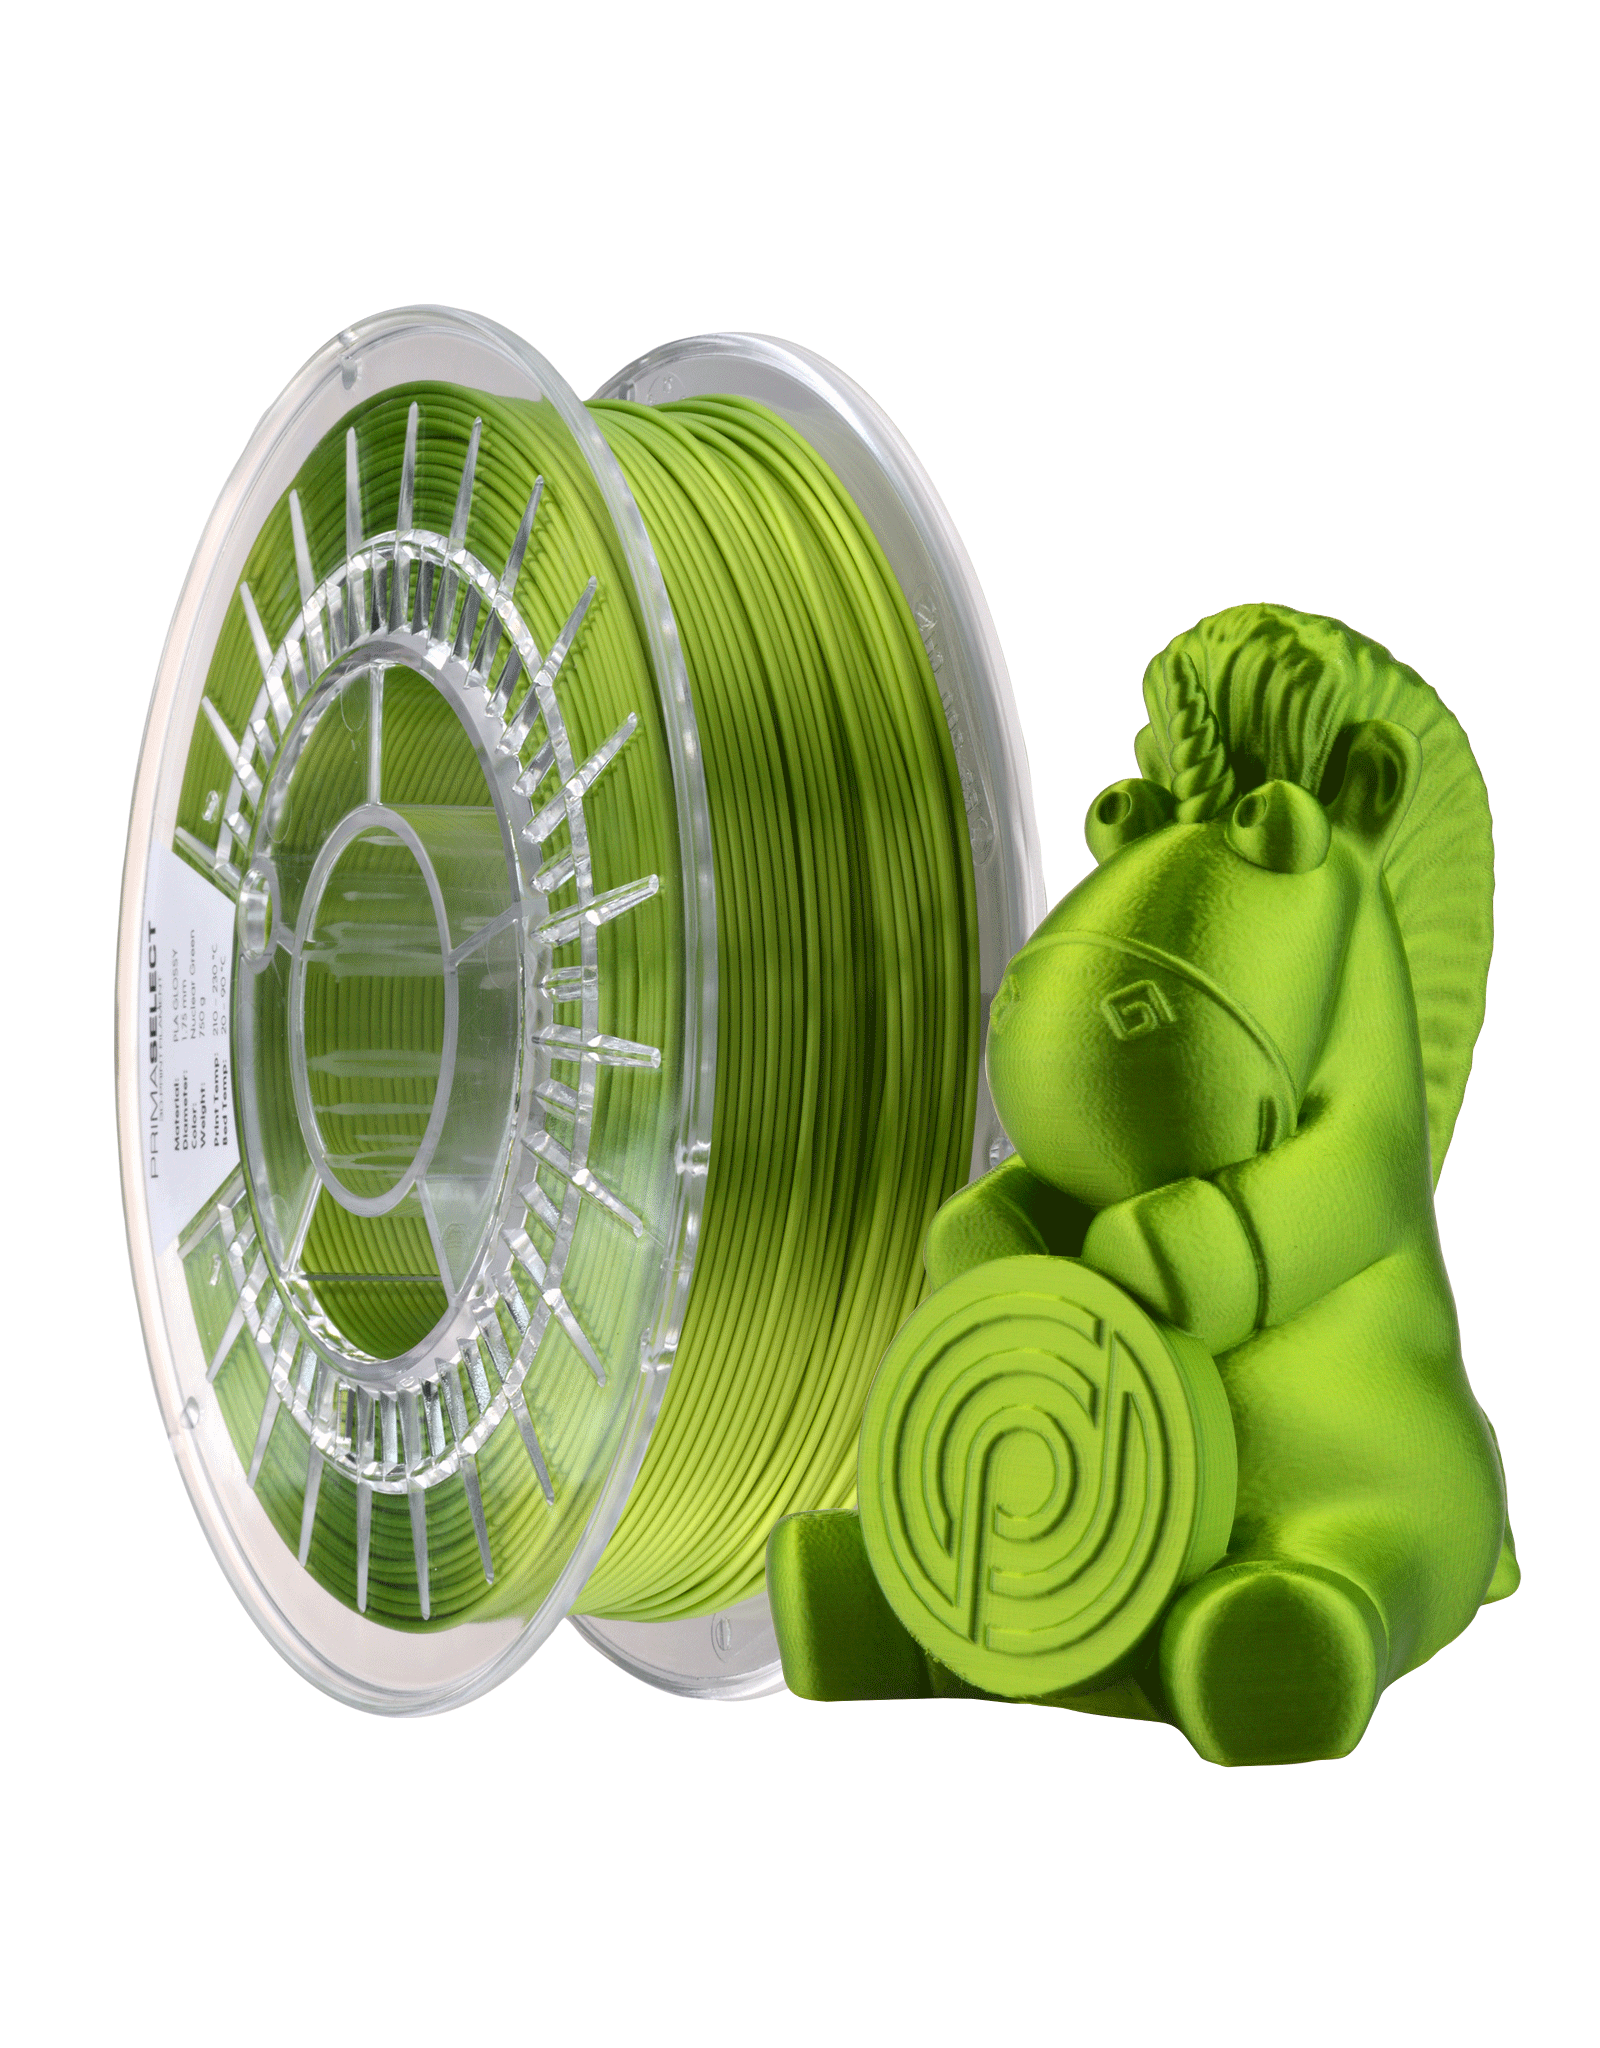 Prima PrimaSelect PLA Glossy - 1.75mm - 750 g  -  Nucleair groen